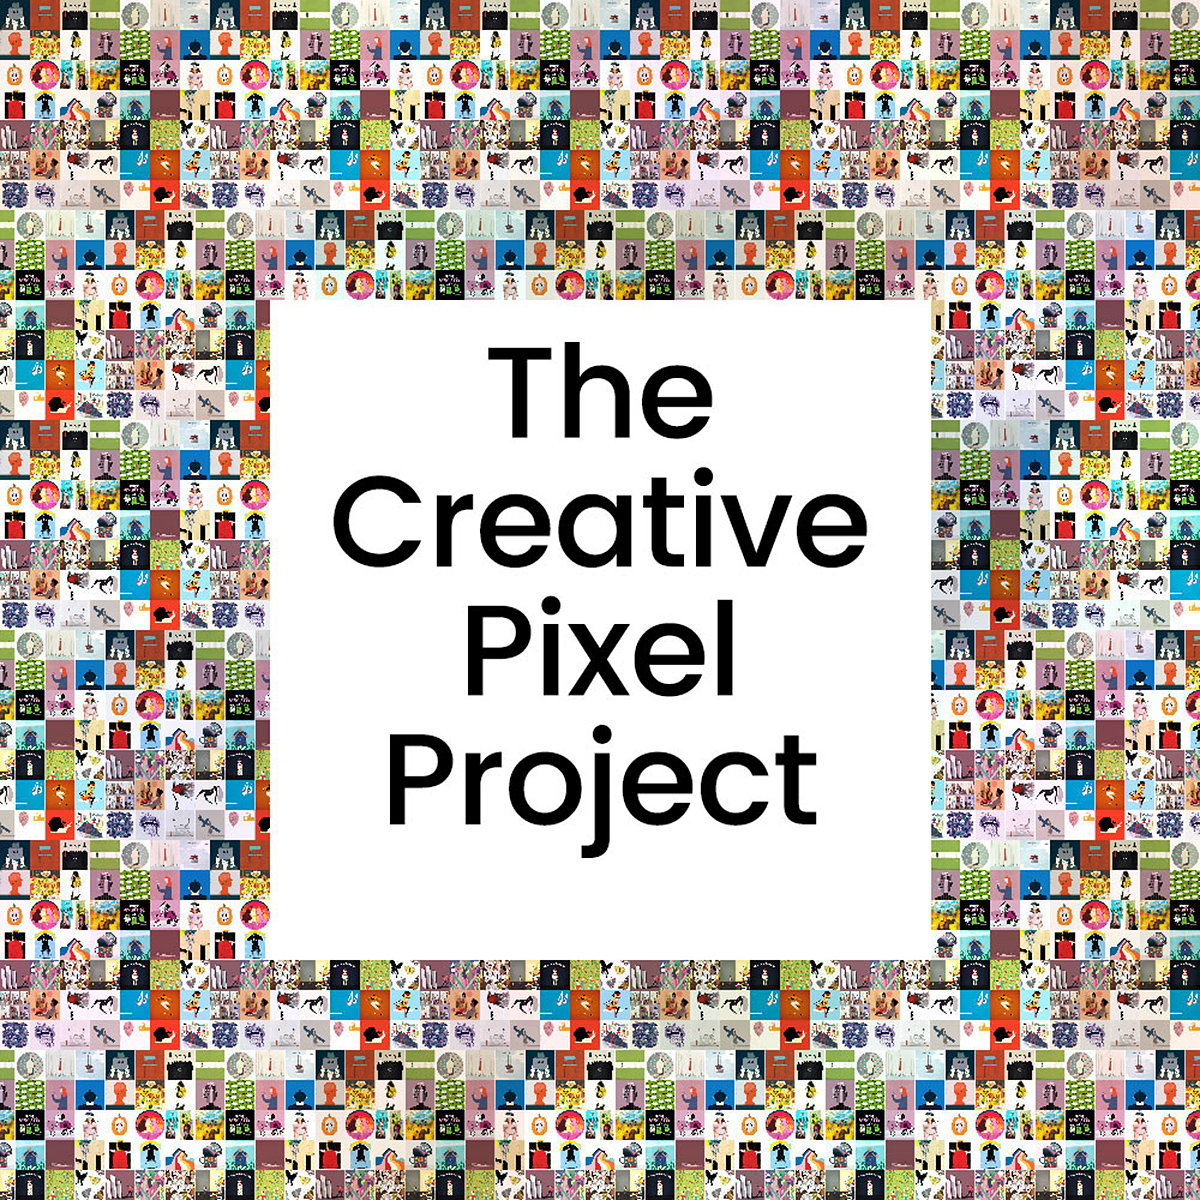 The Creative Pixel Project